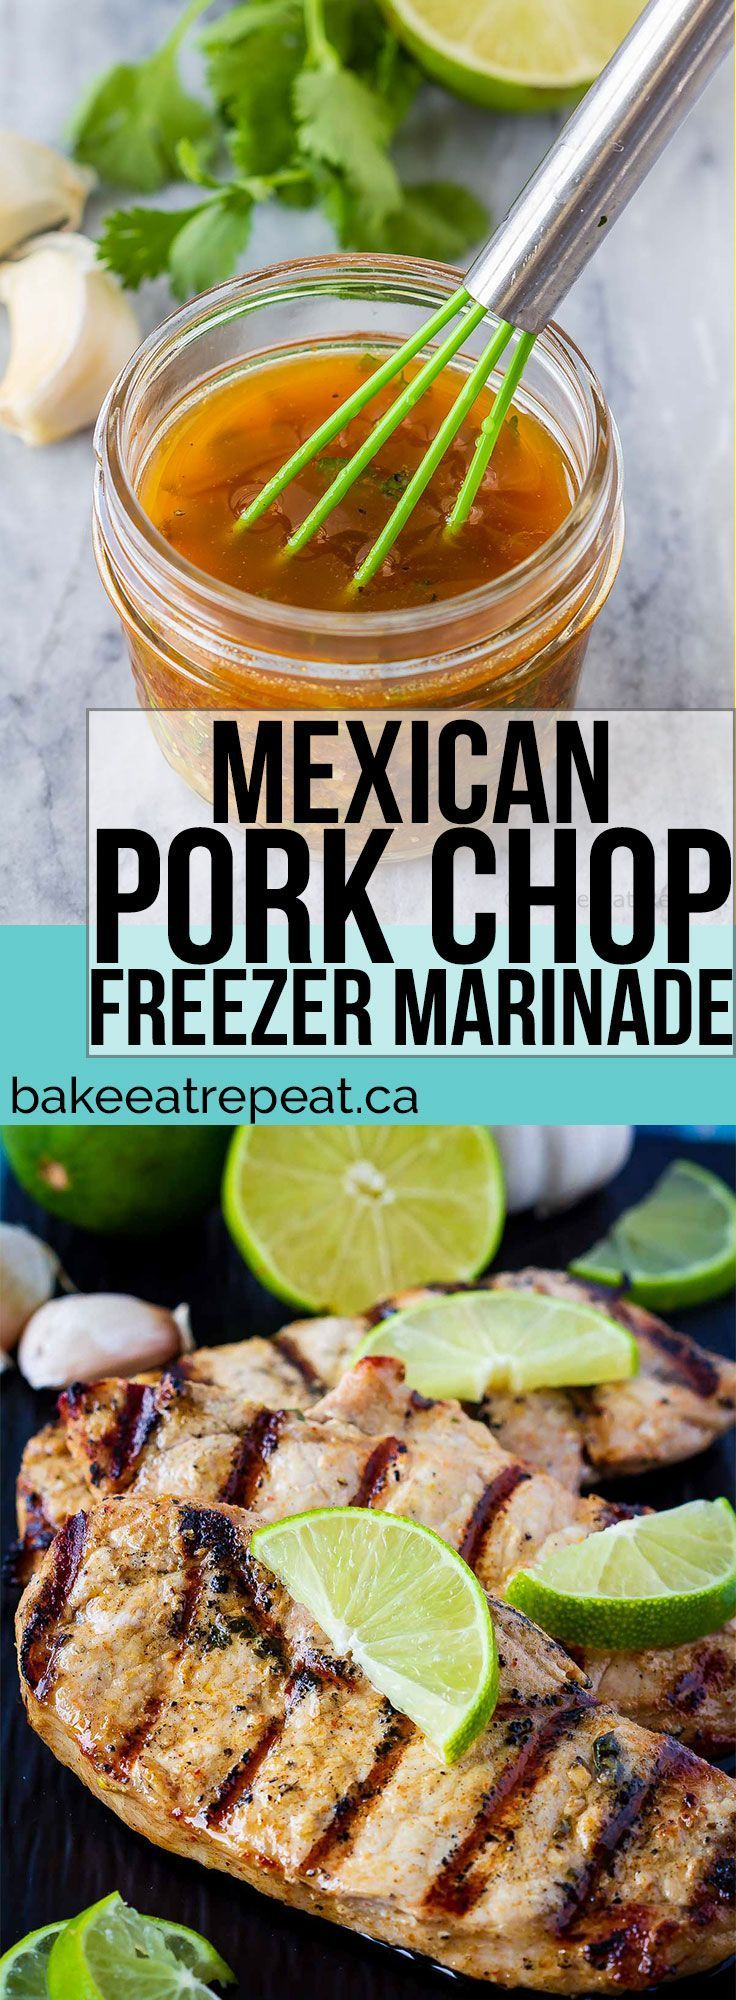 This Mexican pork chop marinade is easy to mix up and adds so much flavour to yo...   -  Yummy Recipes